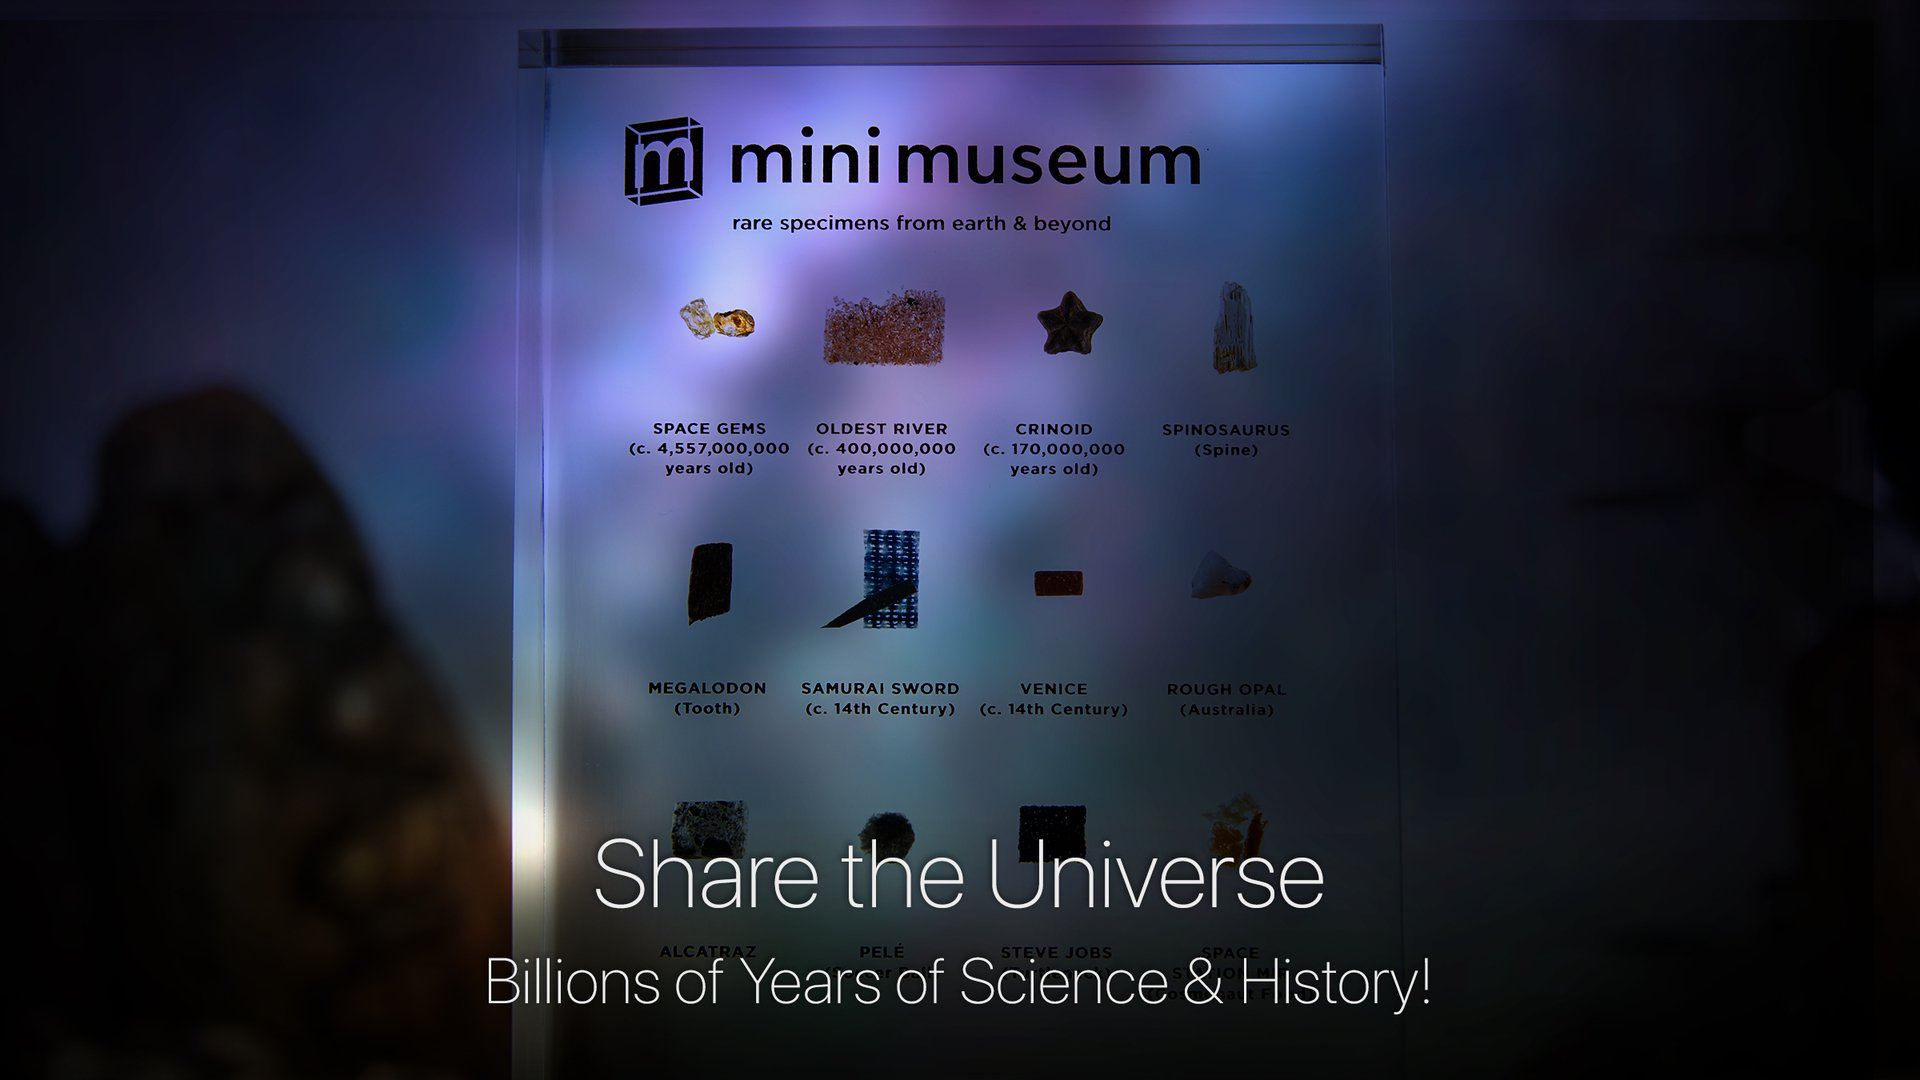 Share the Universe with Billions of Years of Science and History!